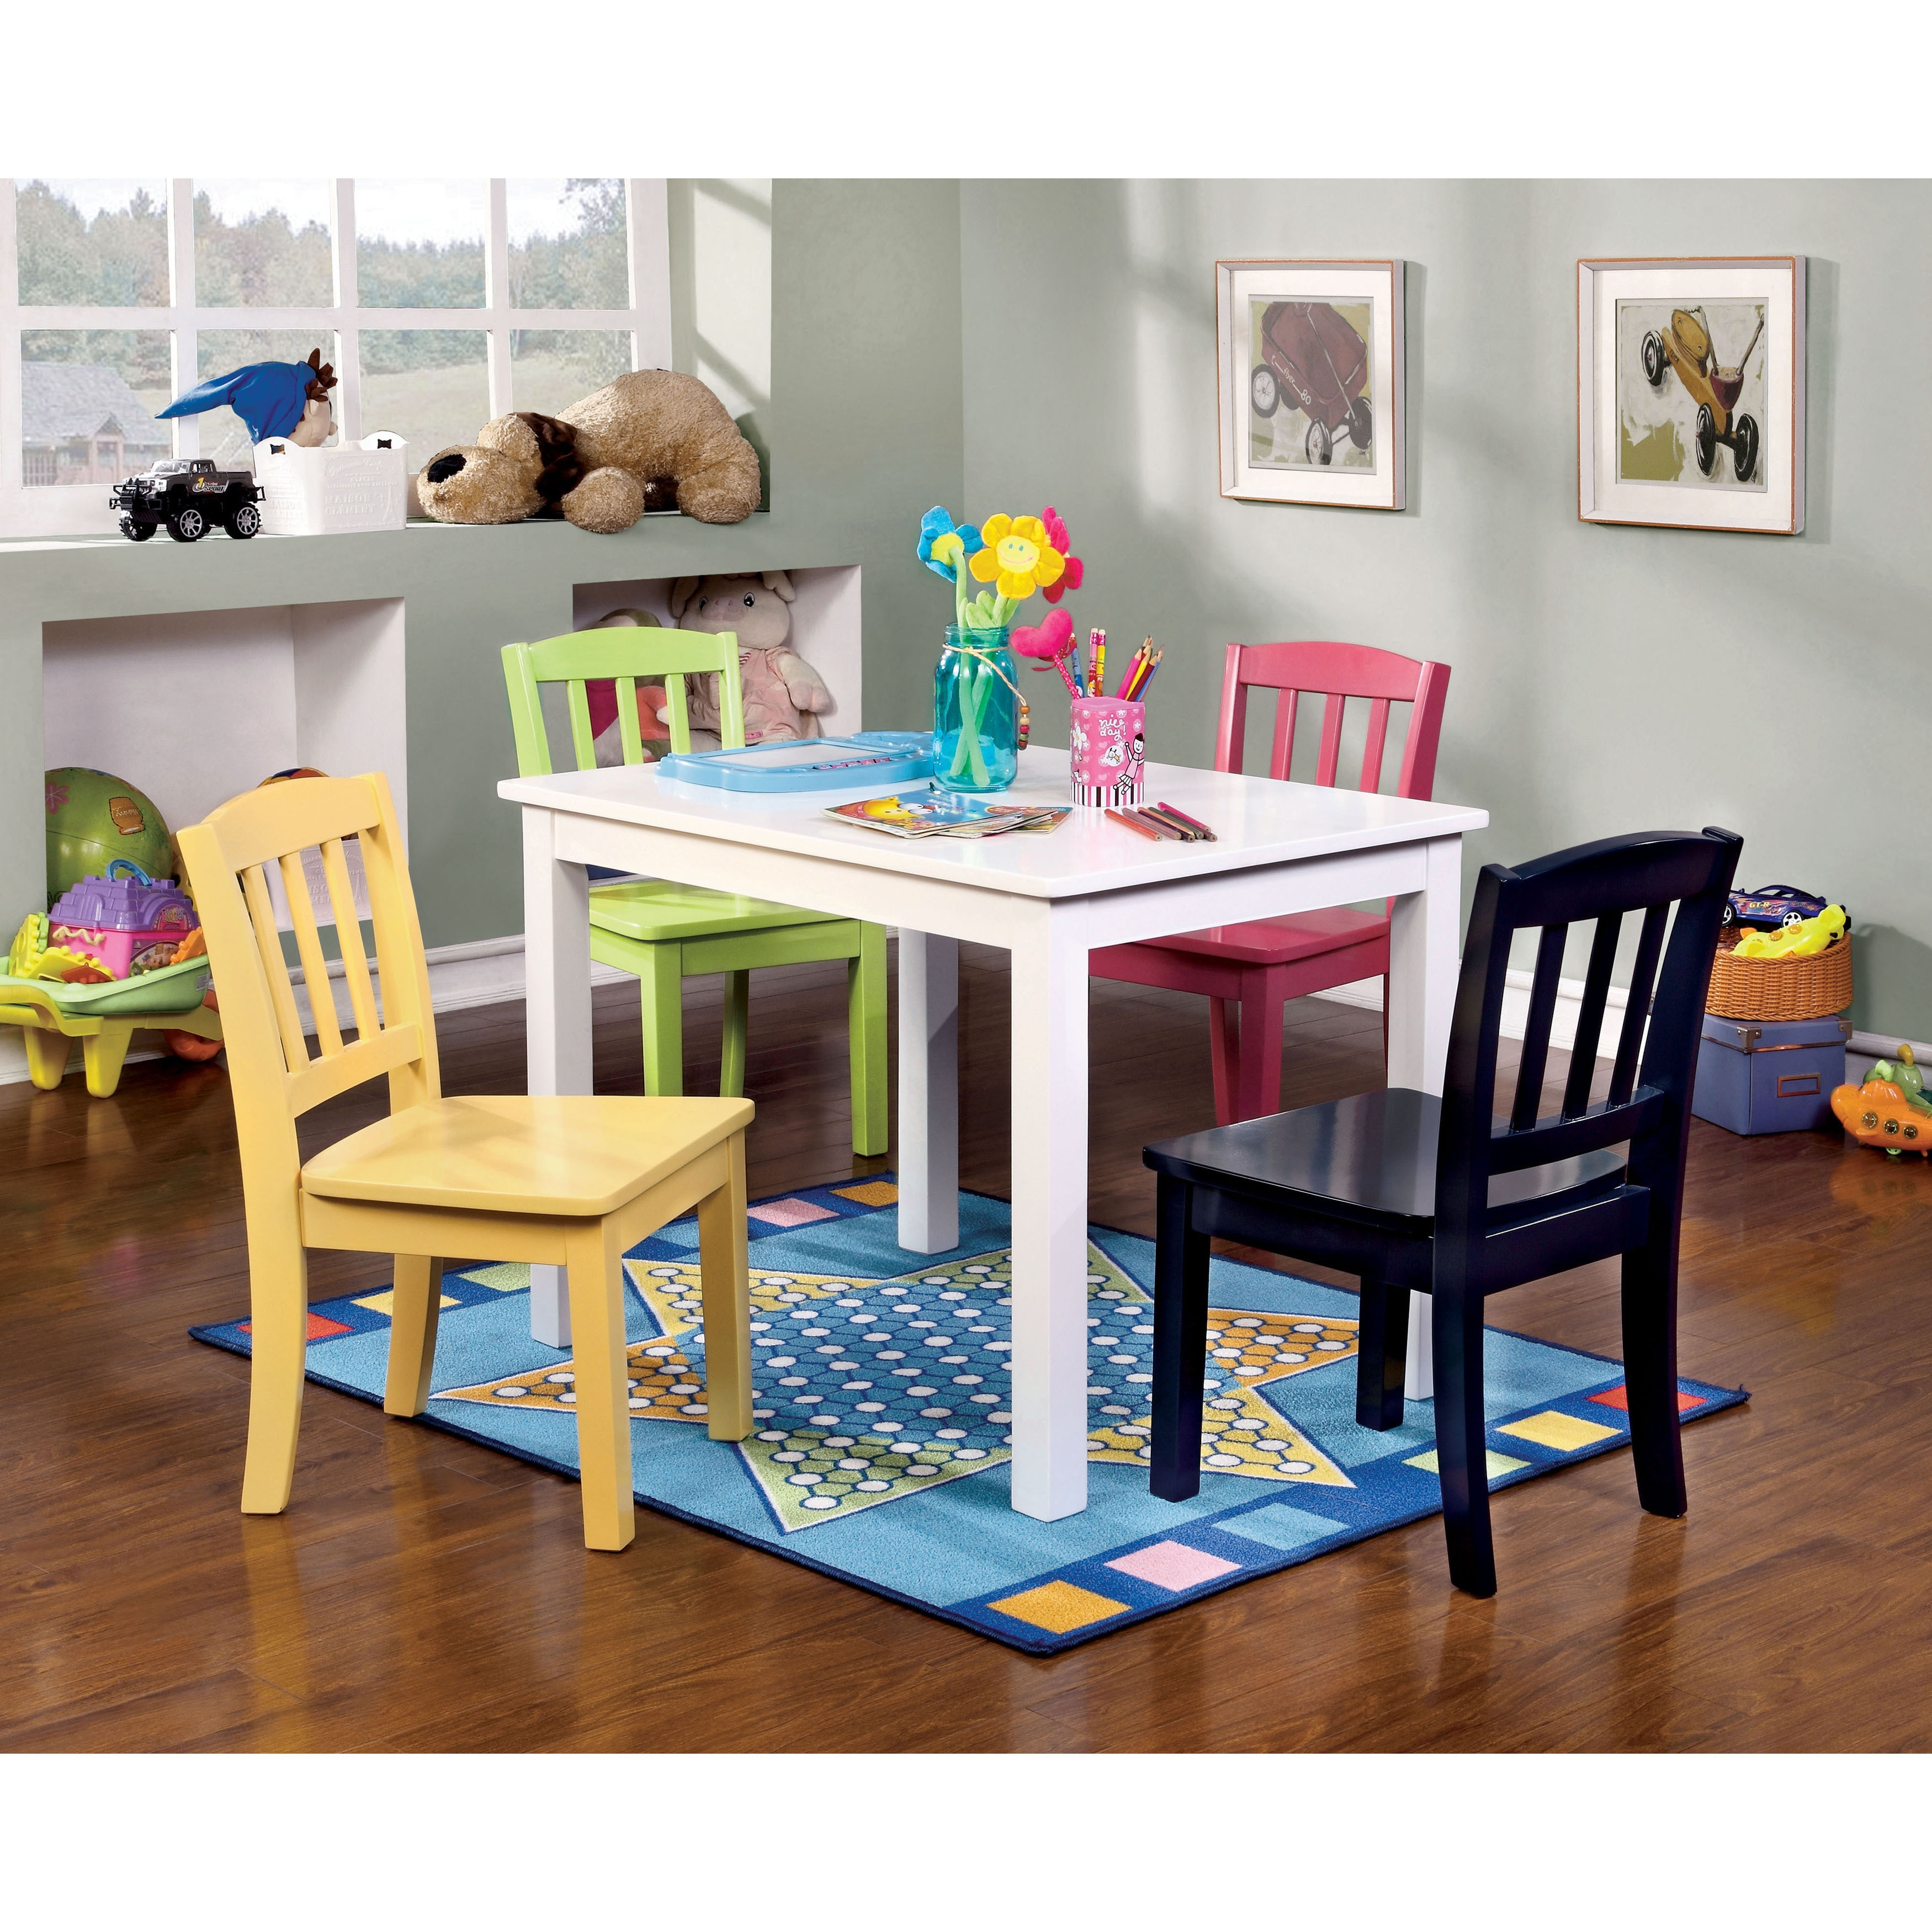 Furniture of America Sallie Youth 5-piece Table and Chair...